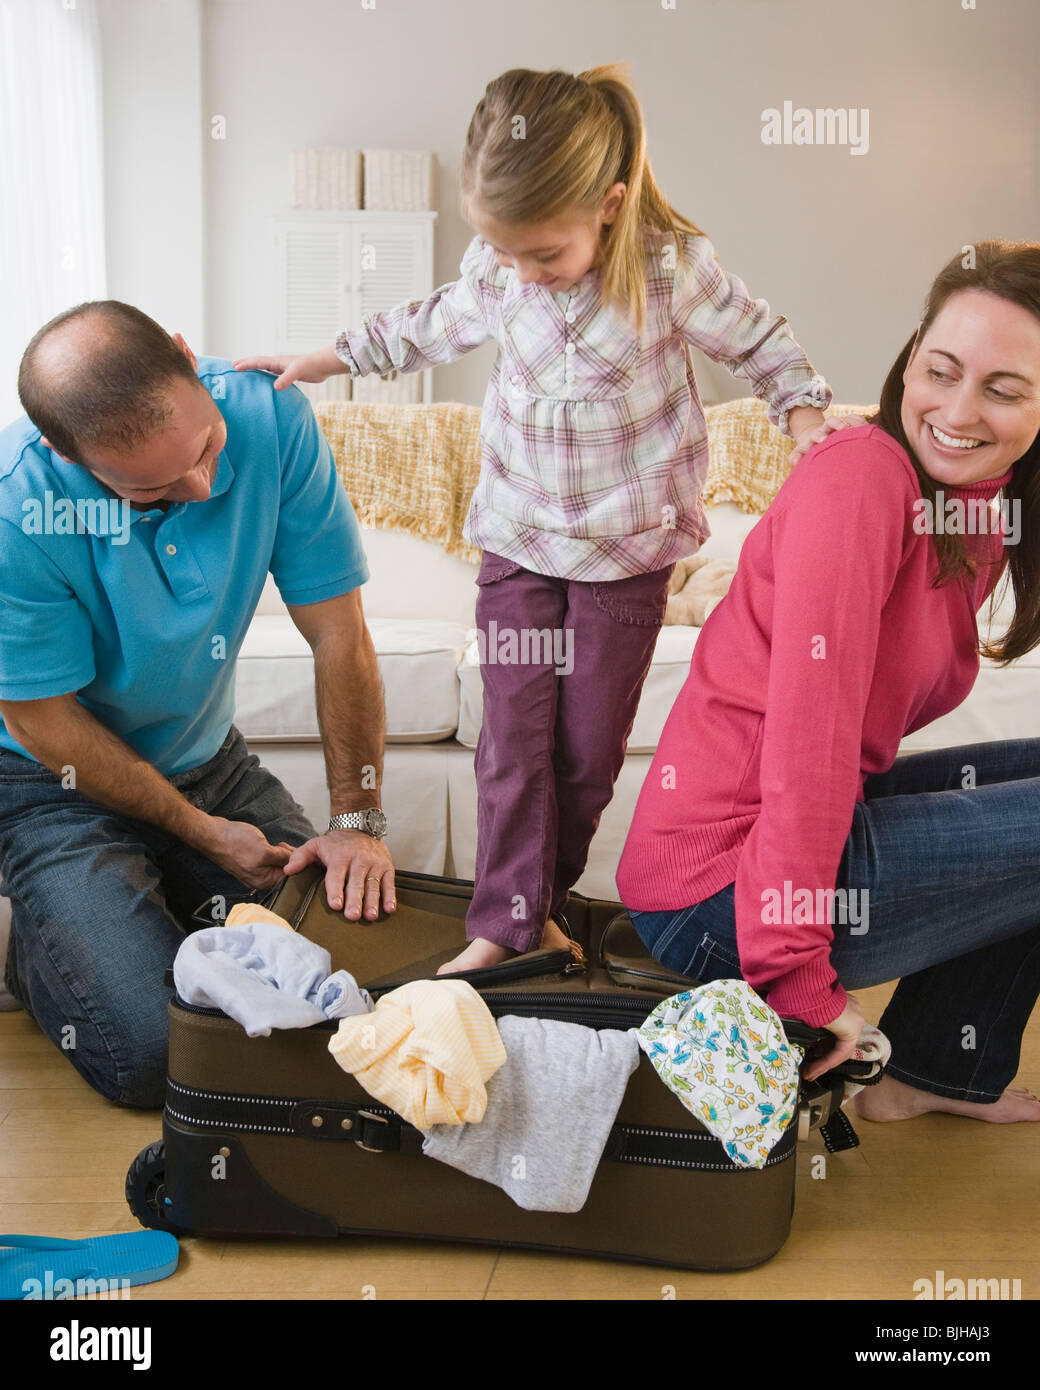 Packing for family vacation - Stock Image